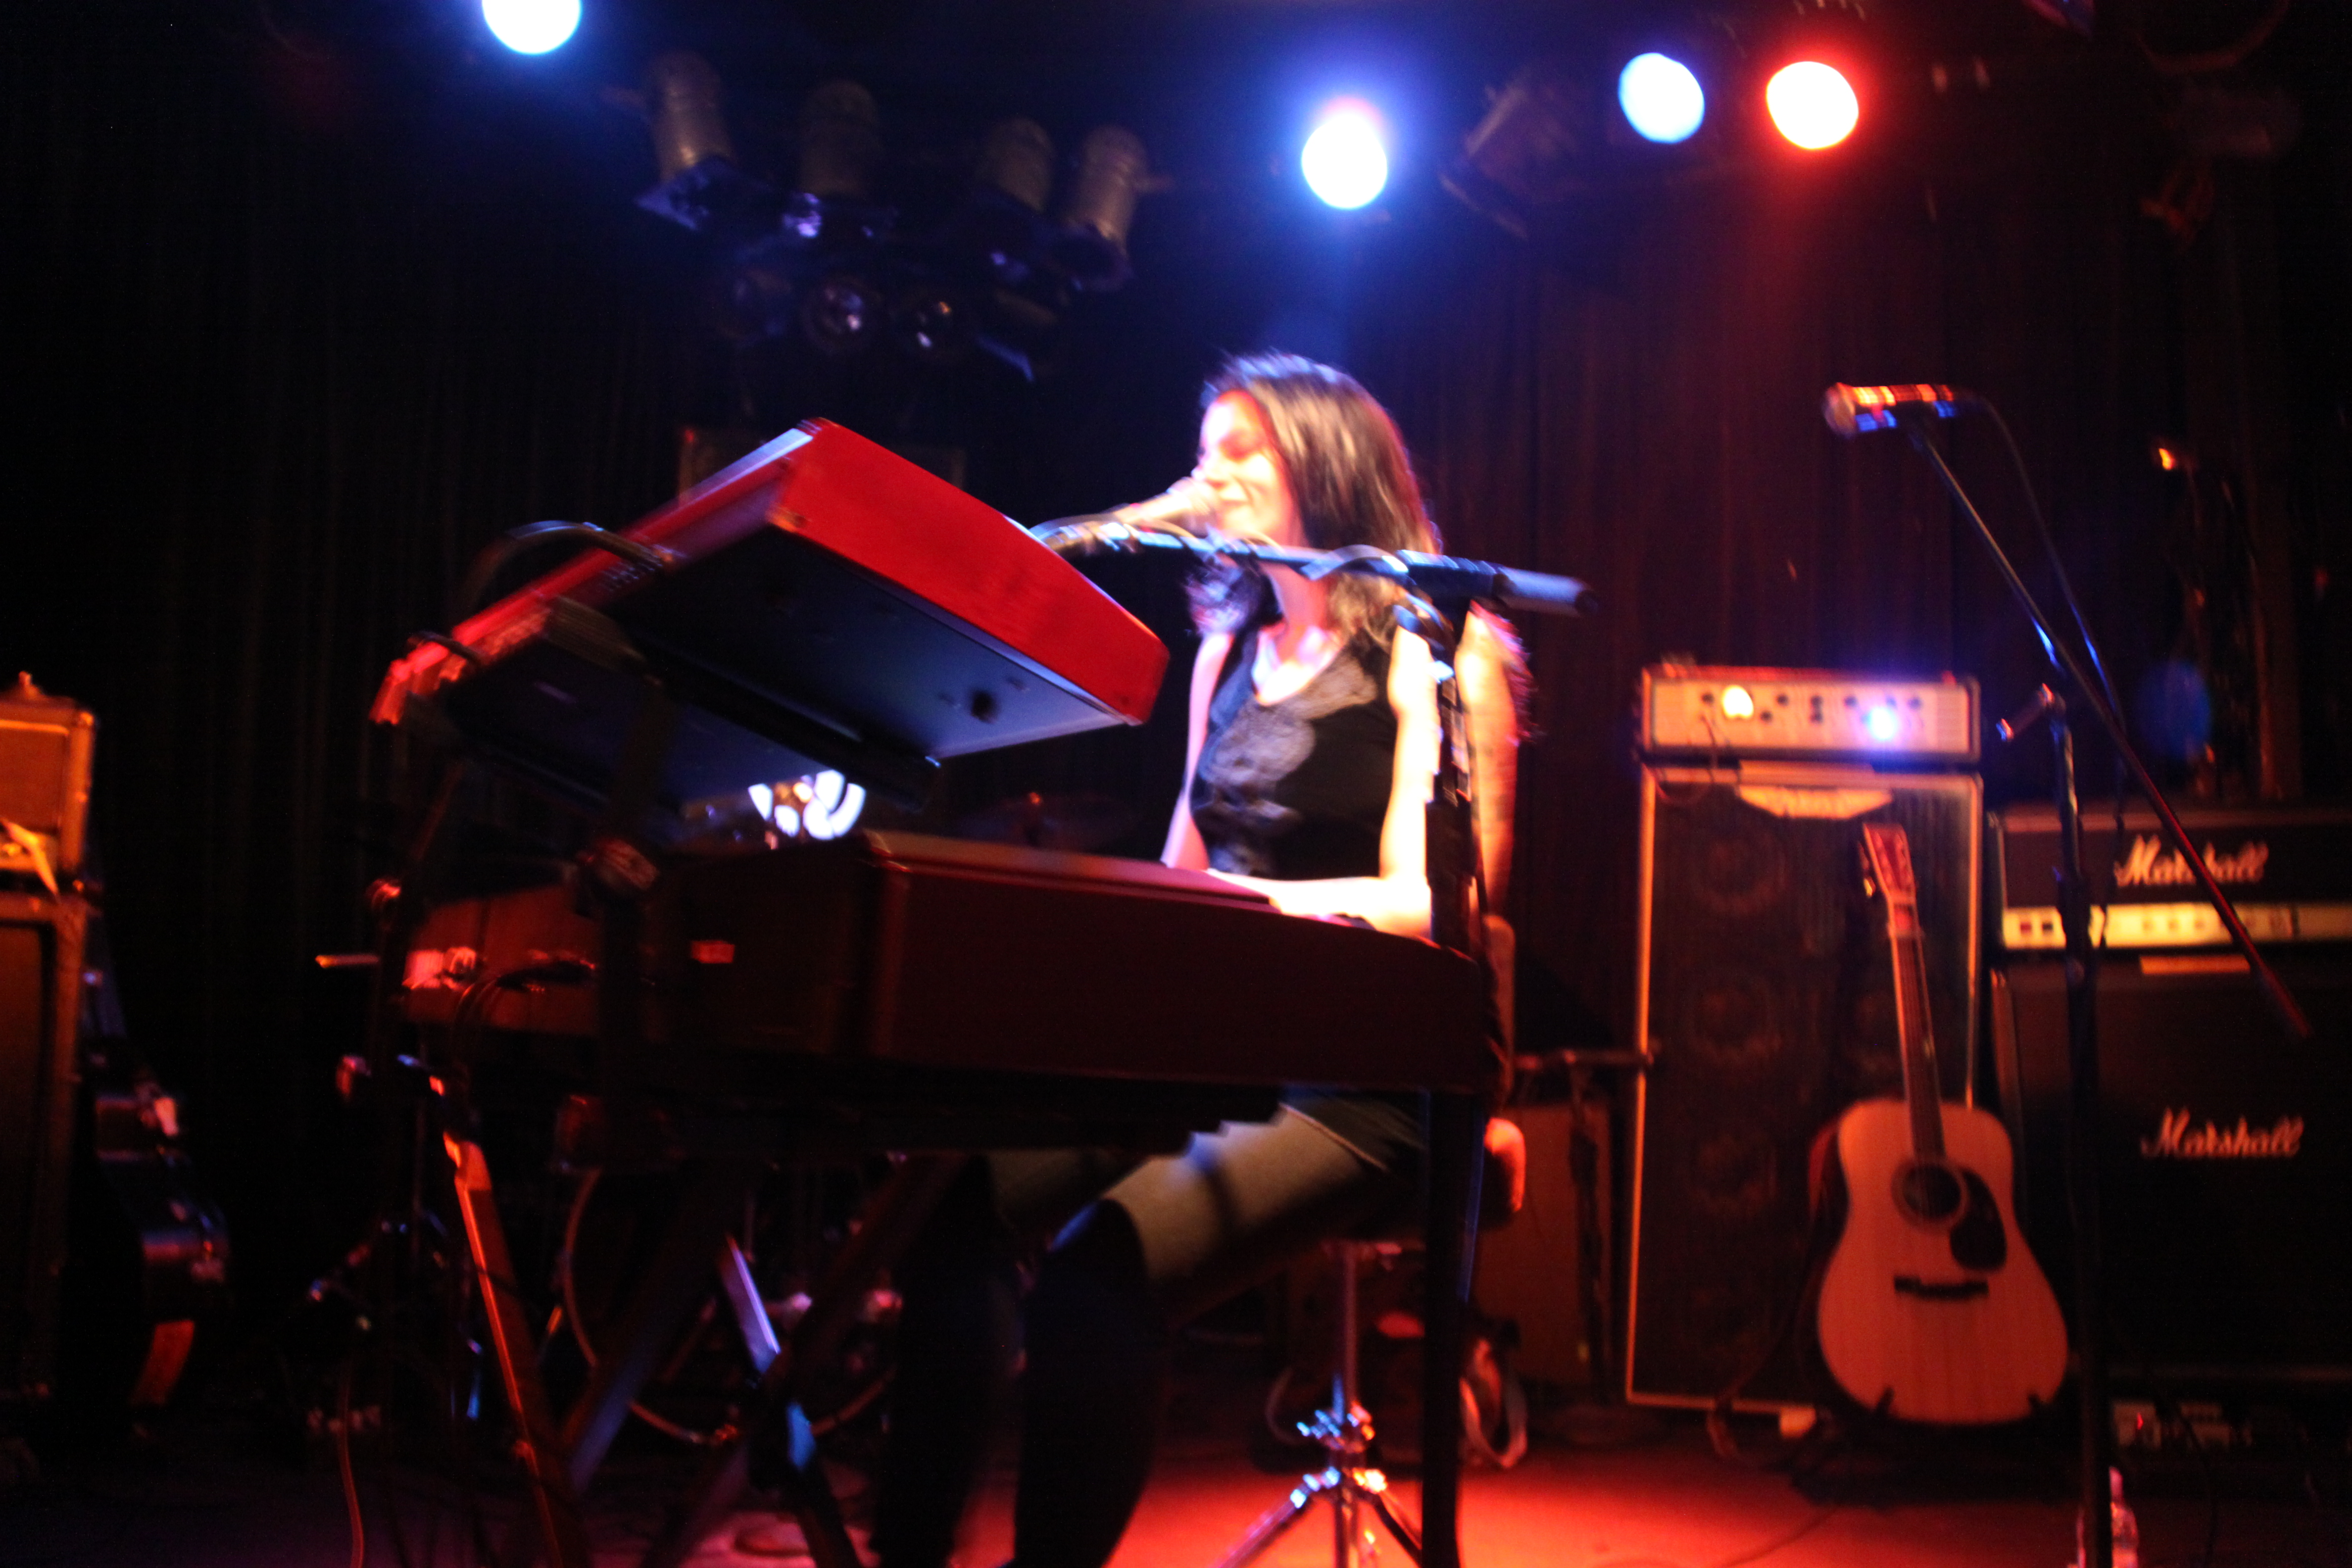 Terra Naomi at The Viper Room: Strippers, Vicodin, Infidelity ...